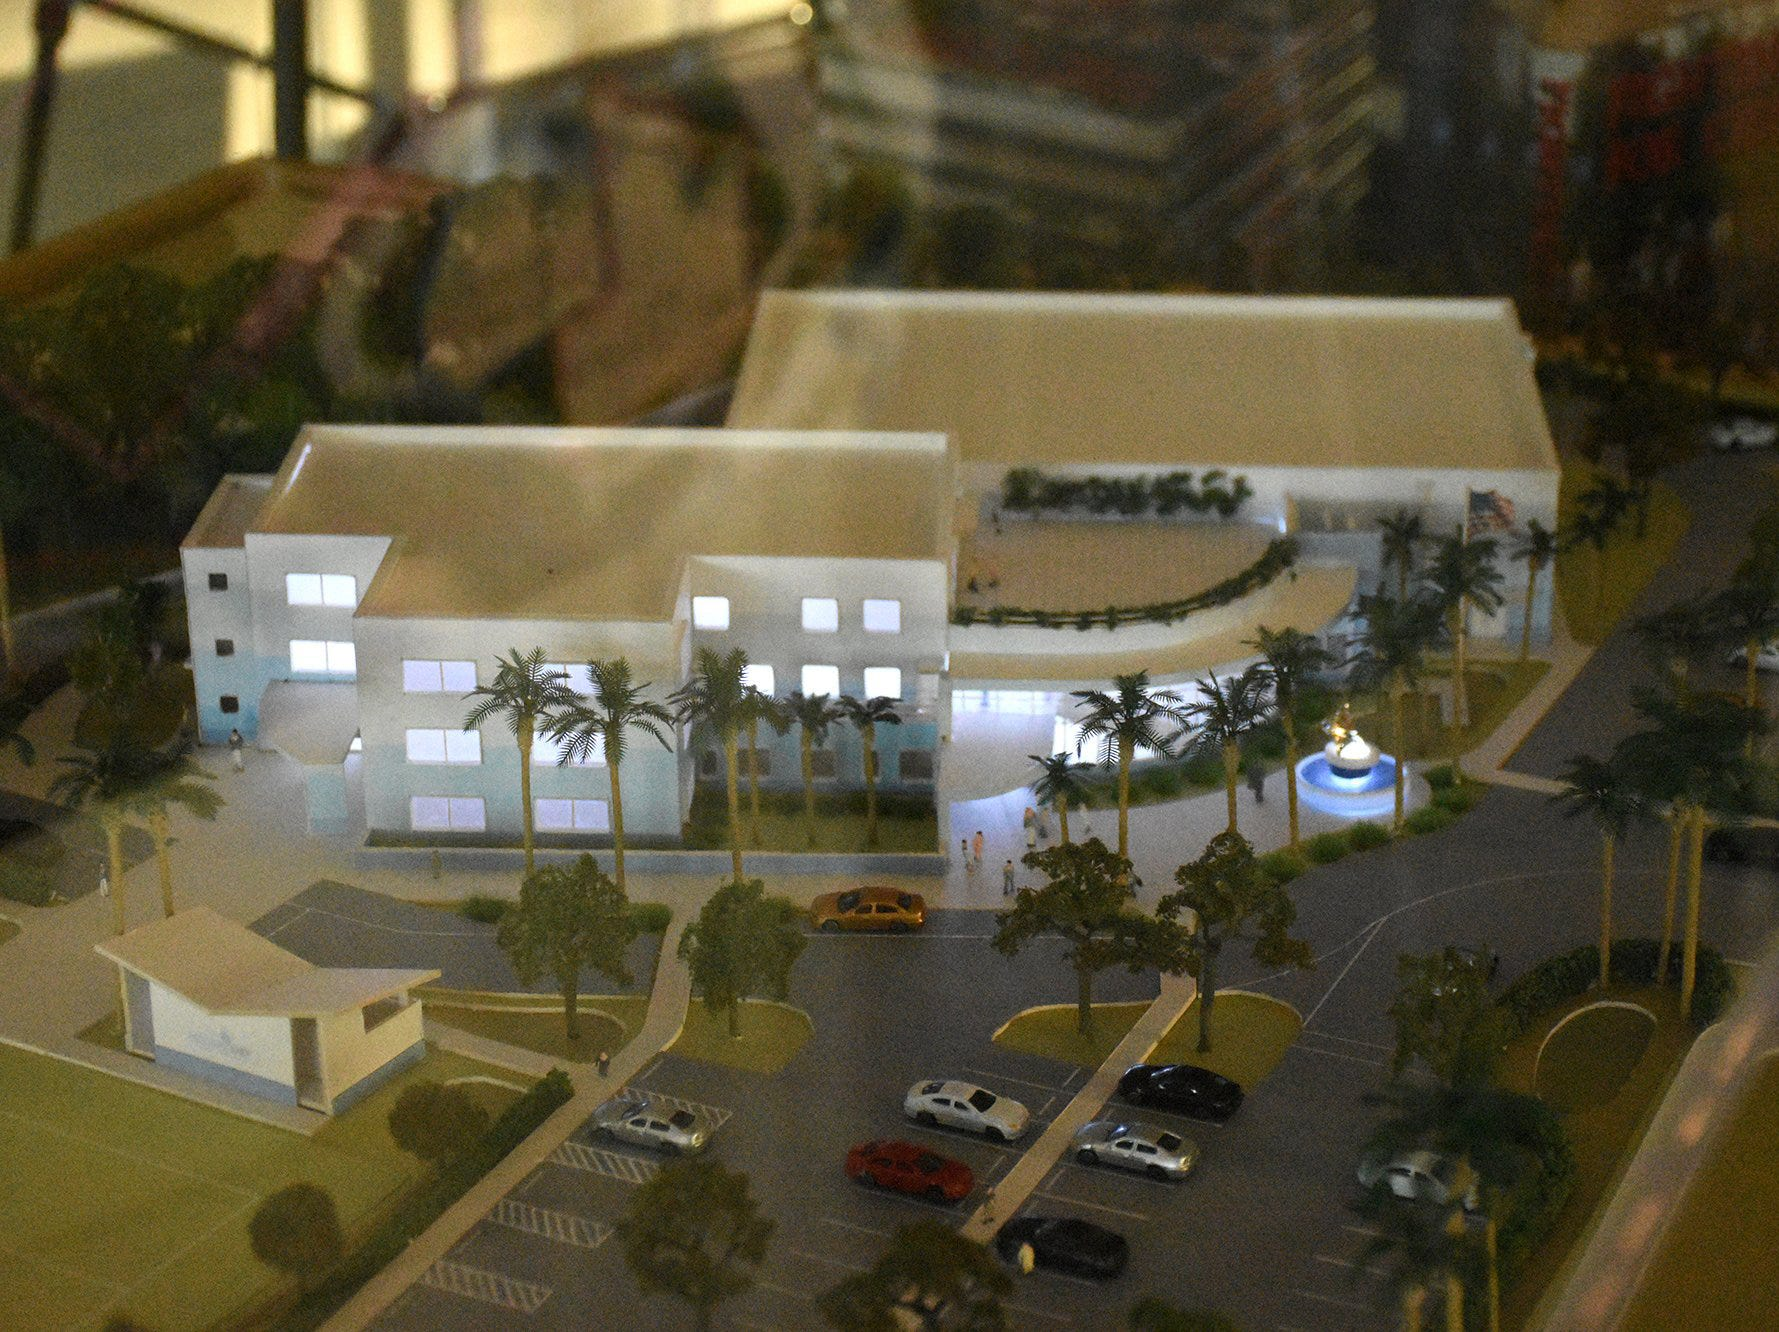 The newly unveiled architect's model lights up beneath its plexiglass housing. Marco Island Academy held 'Cheers for Champions,' a benefit dinner to raise funds for the school's athletic programs, Saturday evening at Hideaway Beach Club.